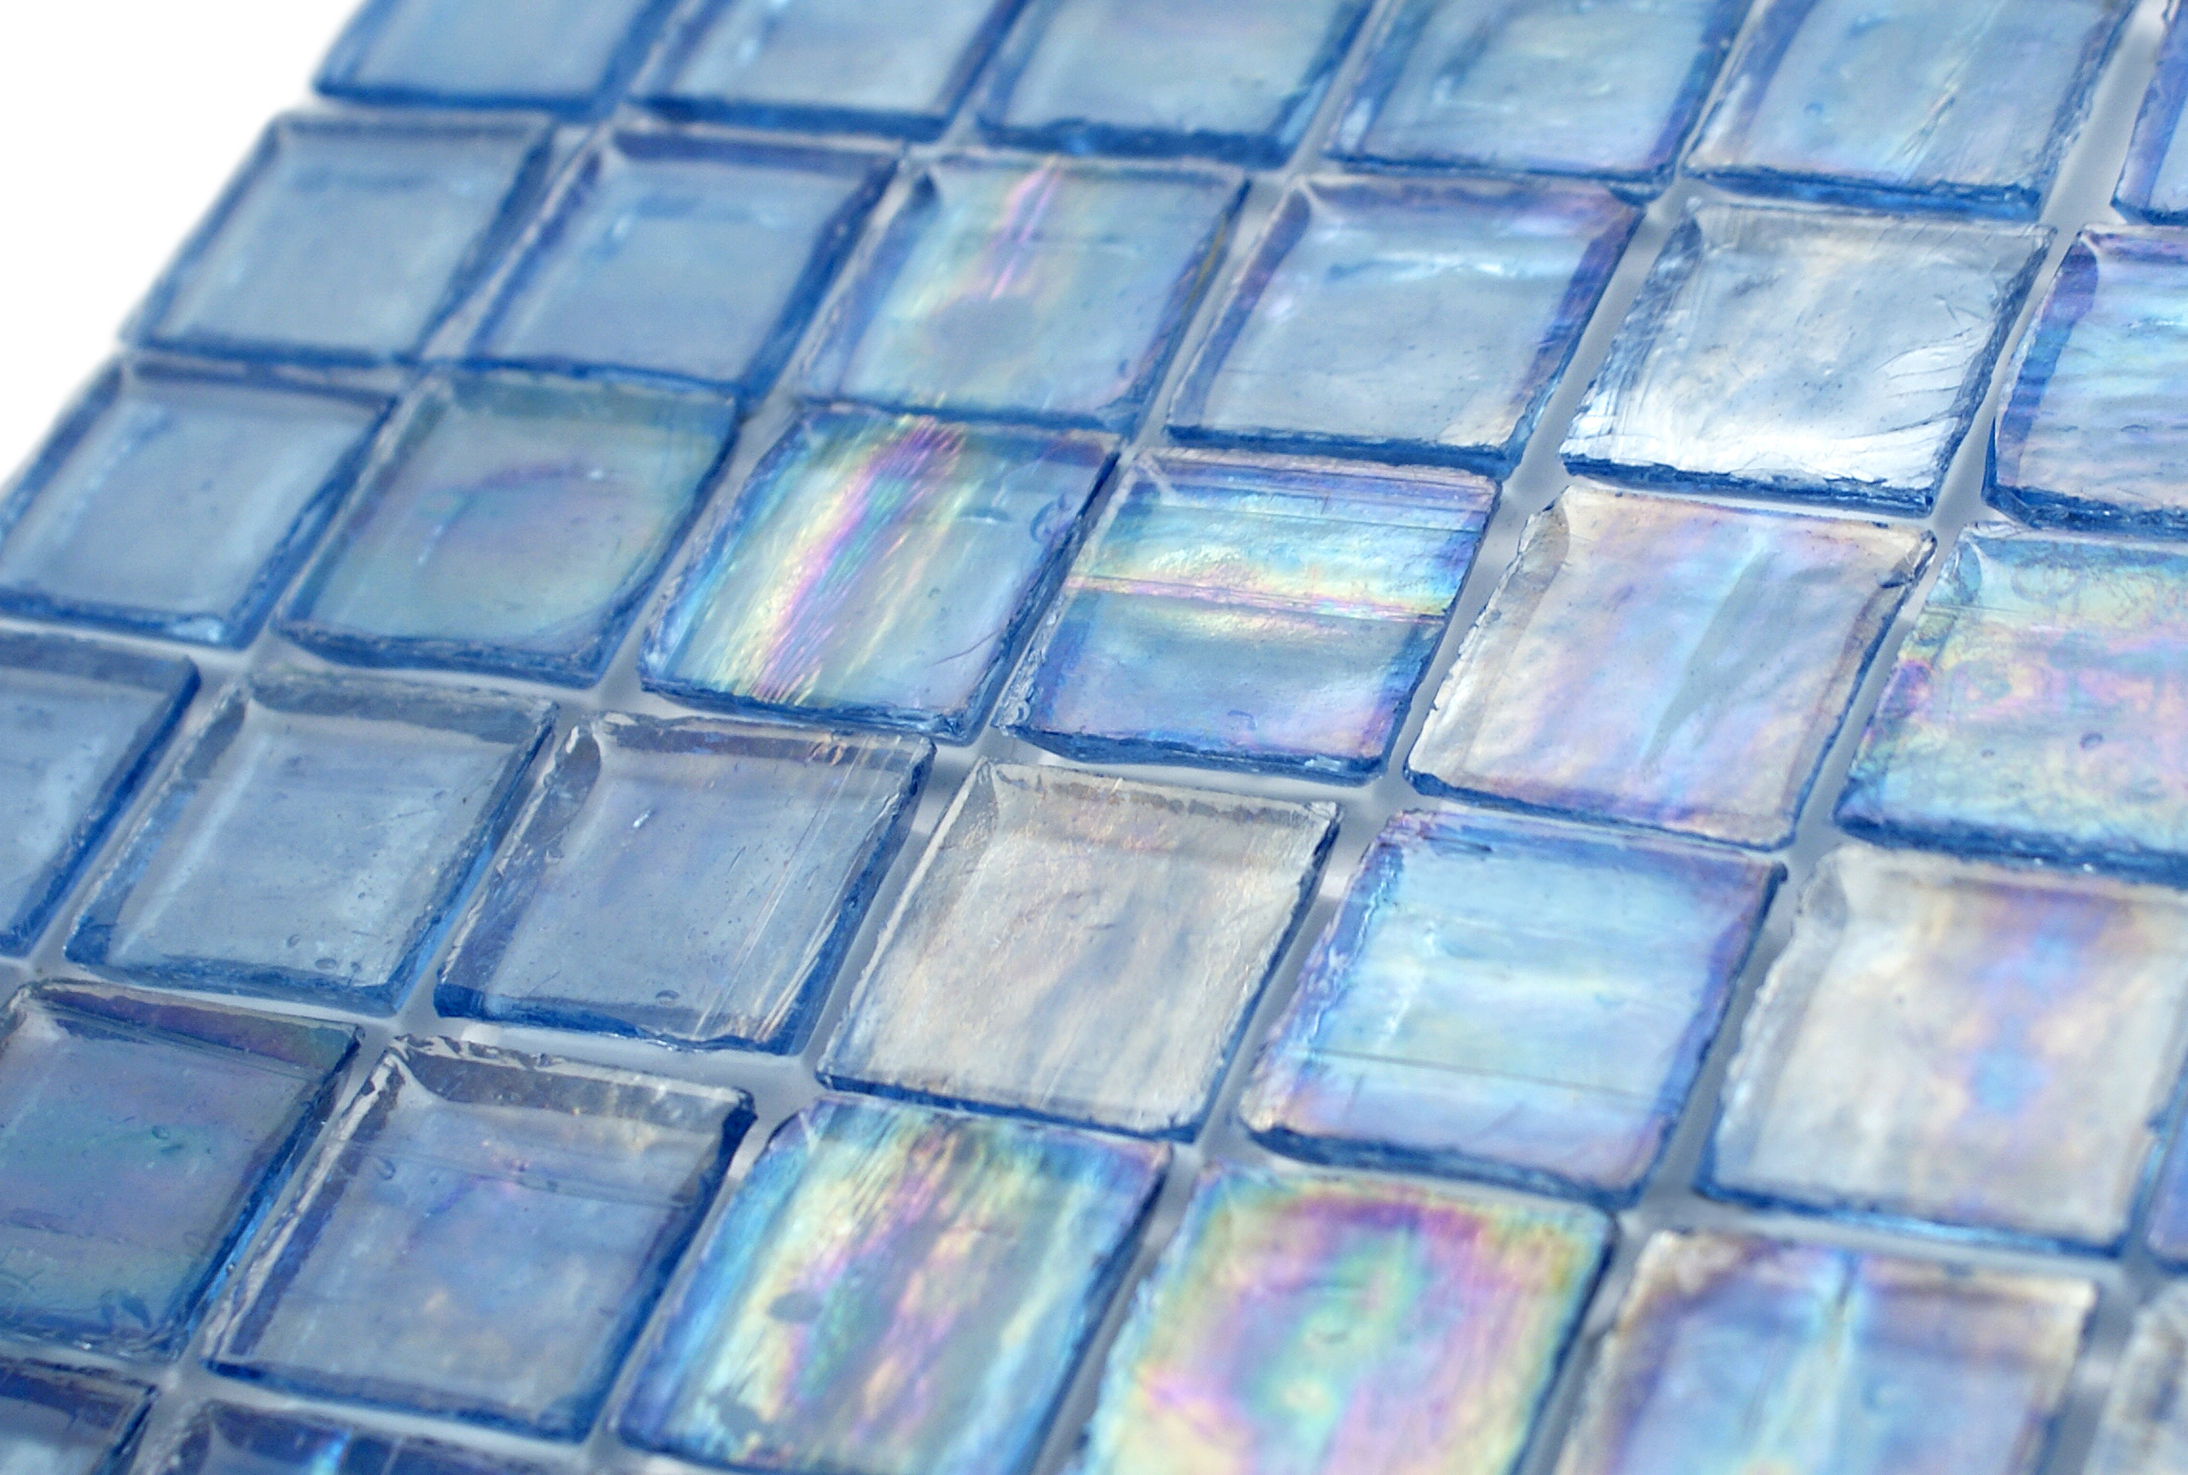 File:Hakatai glass tile 2.jpg - Wikimedia Commons